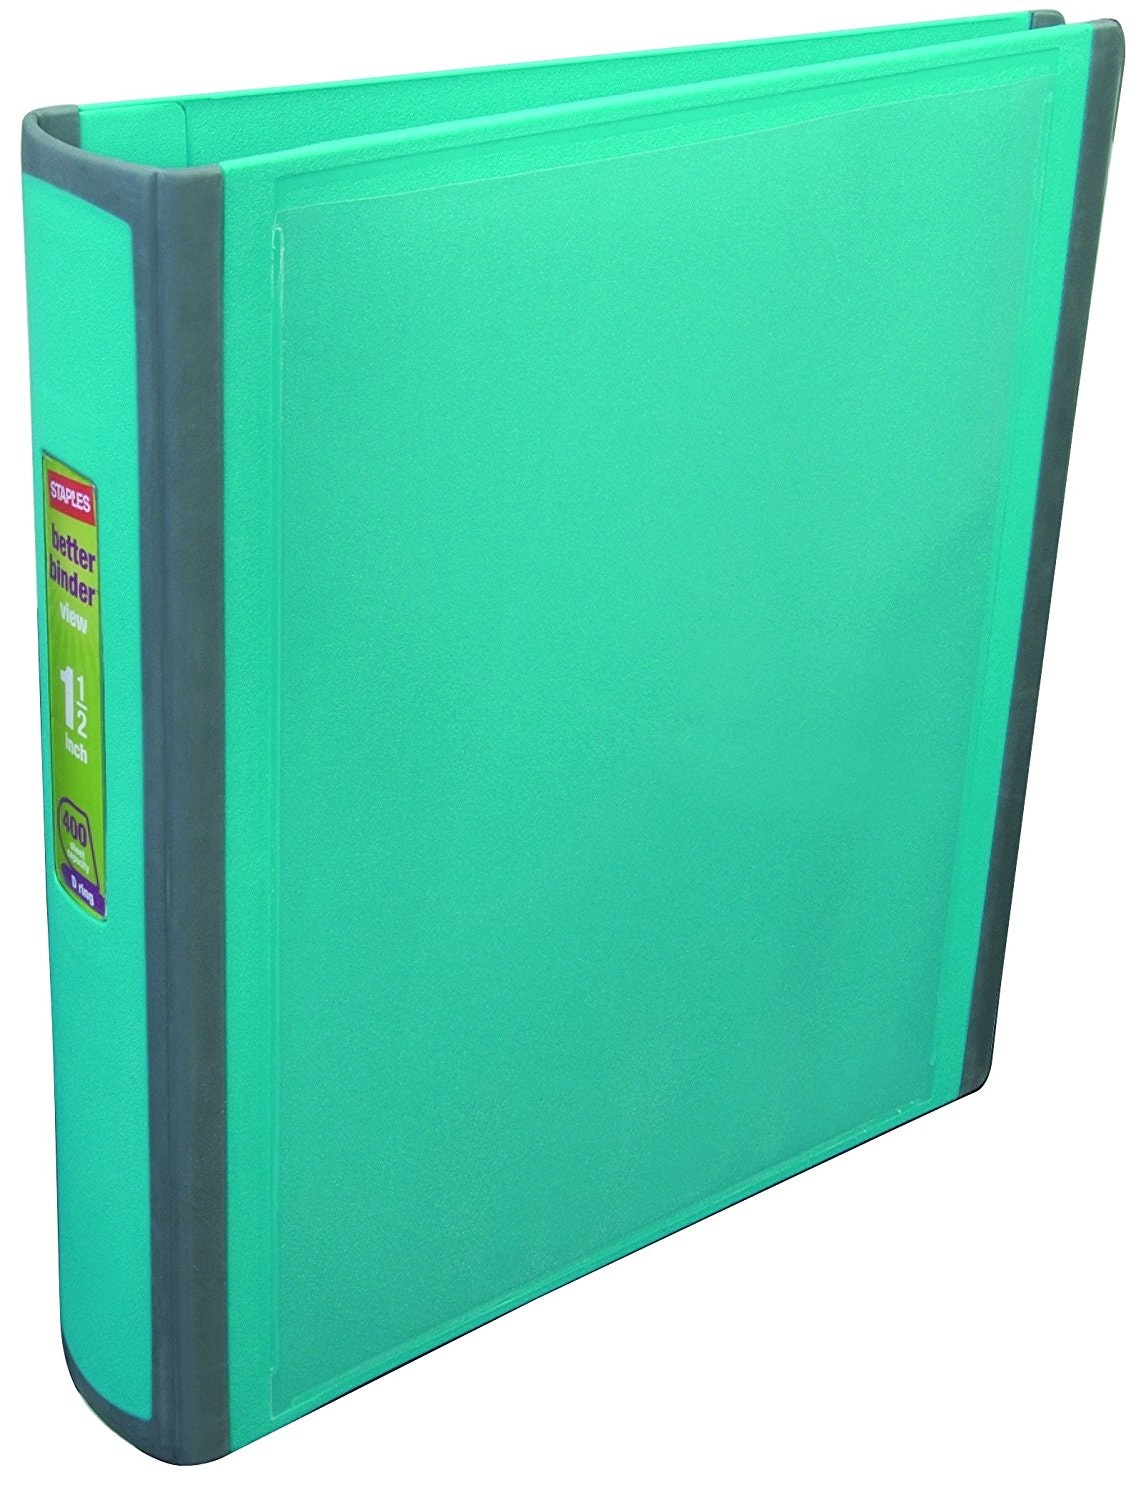 The best 3-ring binder